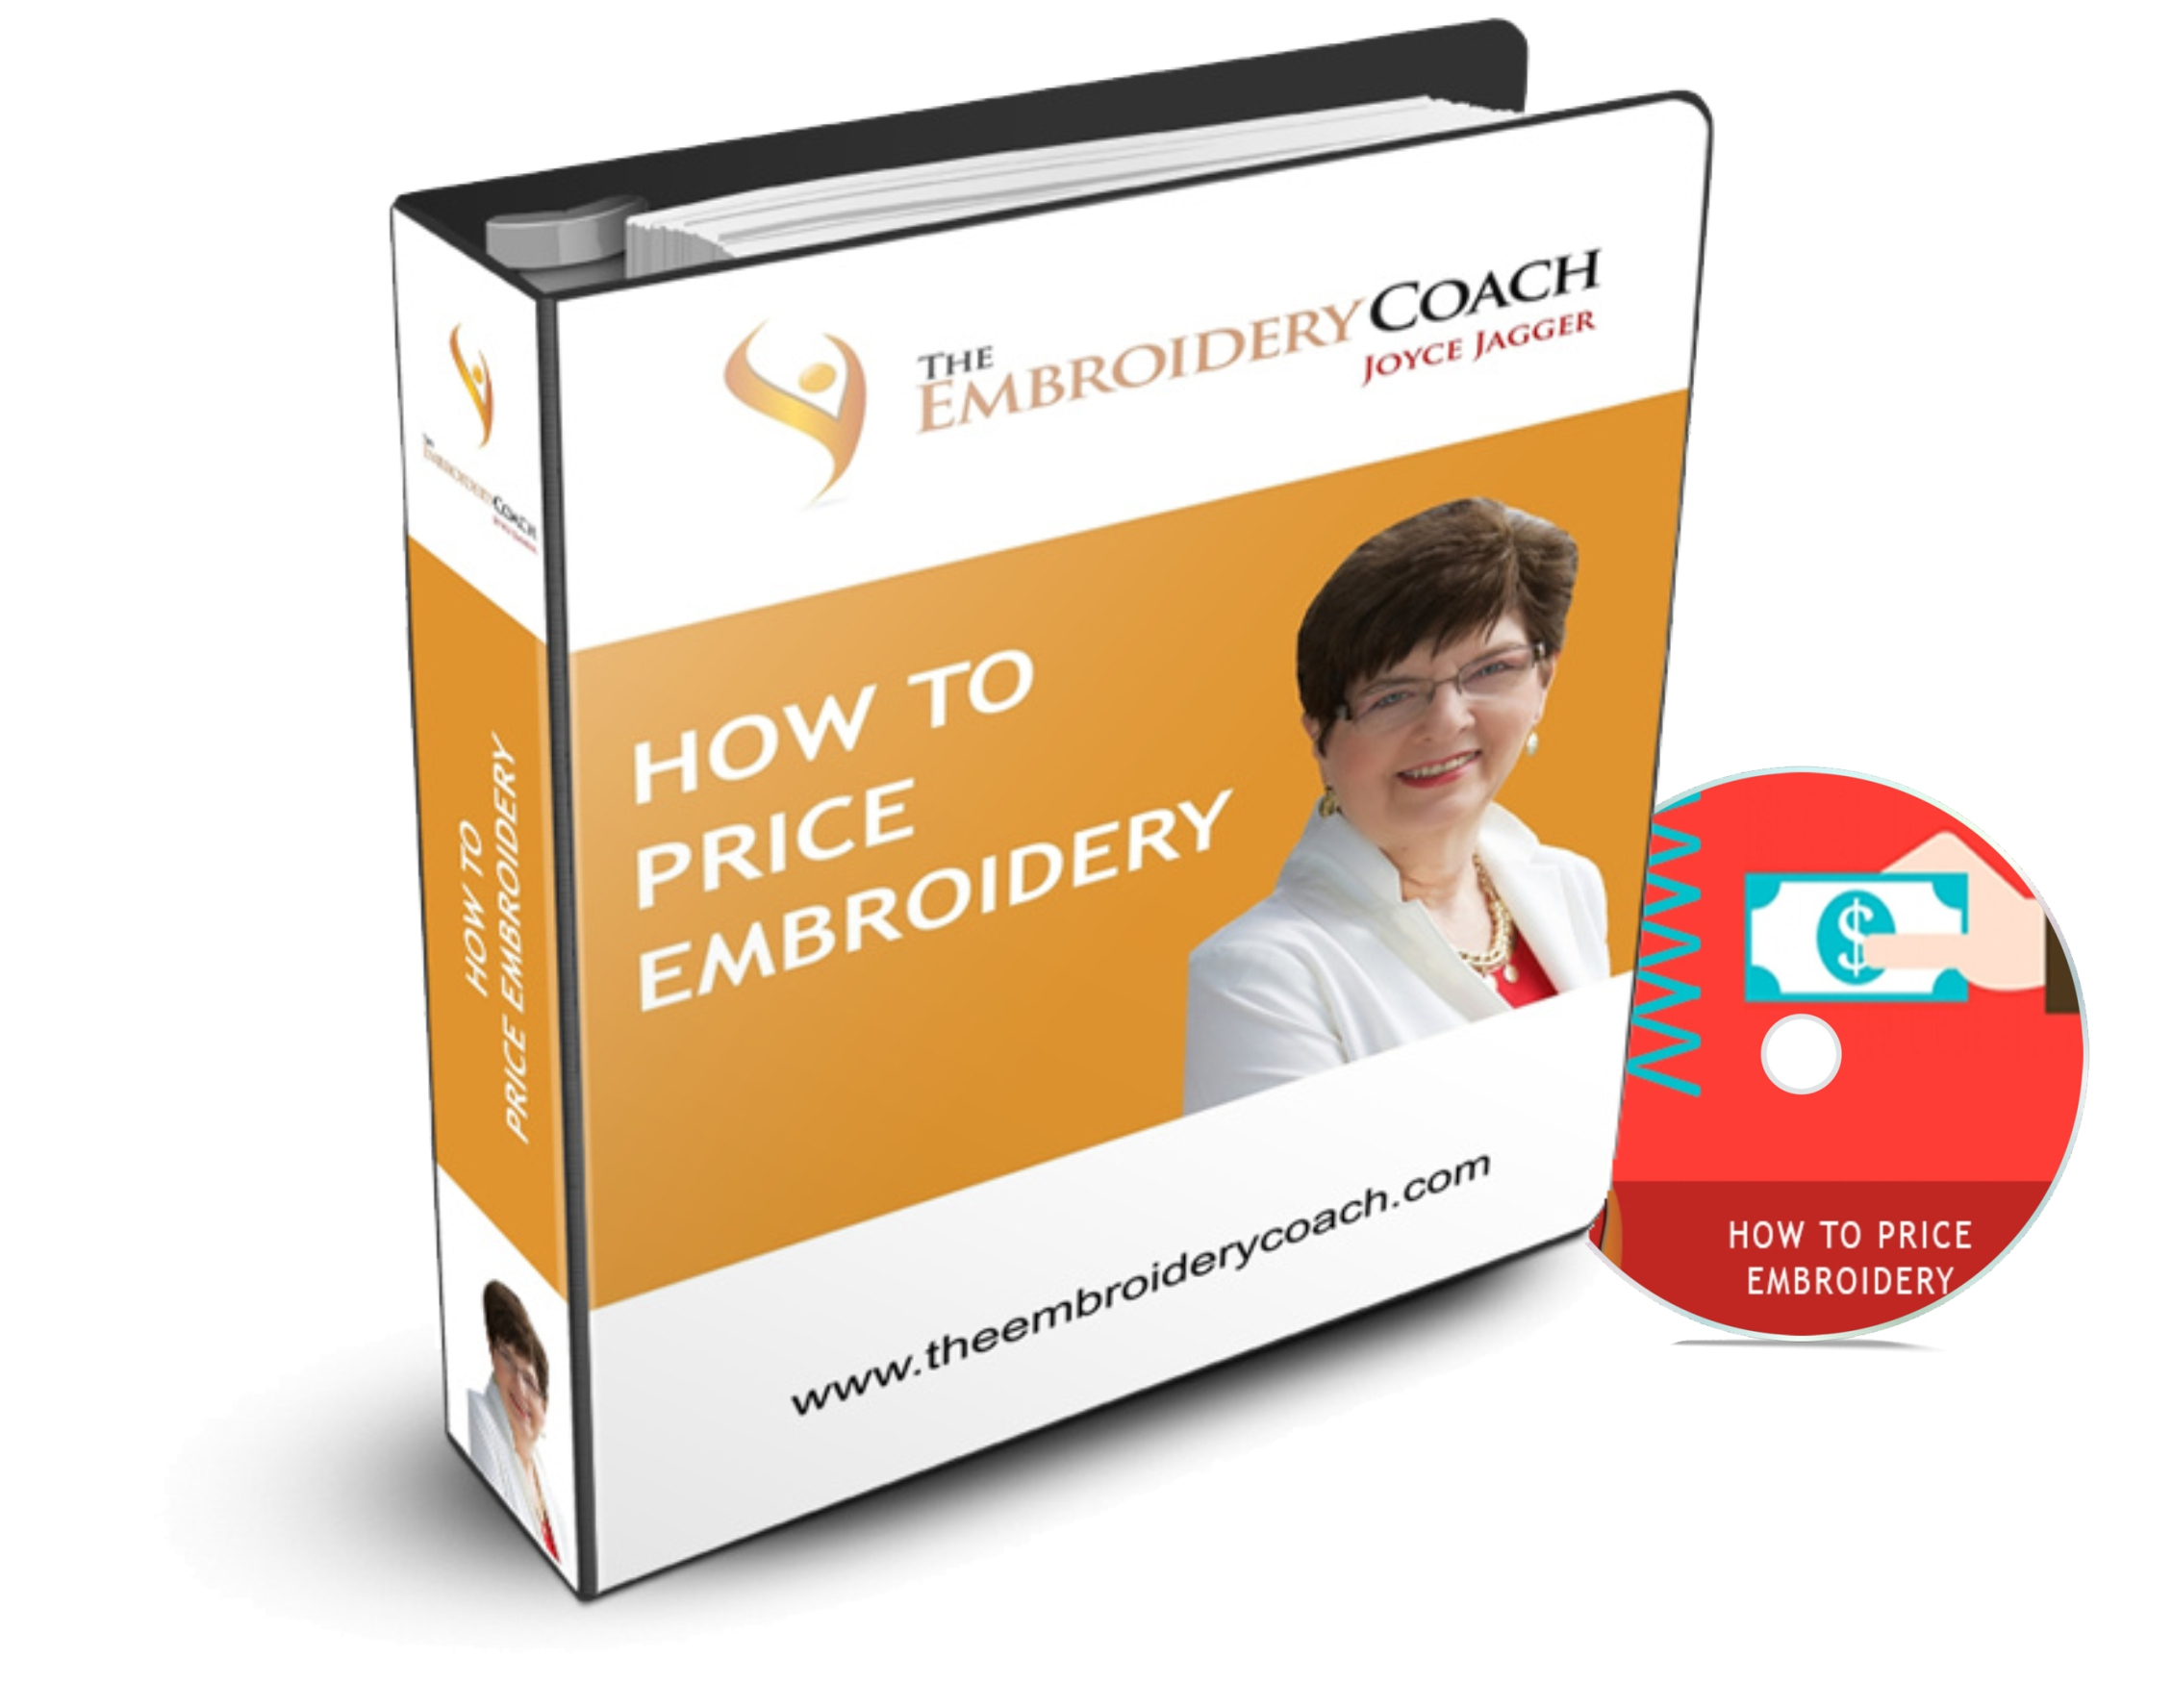 Embroidery Pricing Spreadsheet Intended For How To Price Embroidery Information  Embroidery Industry Expert